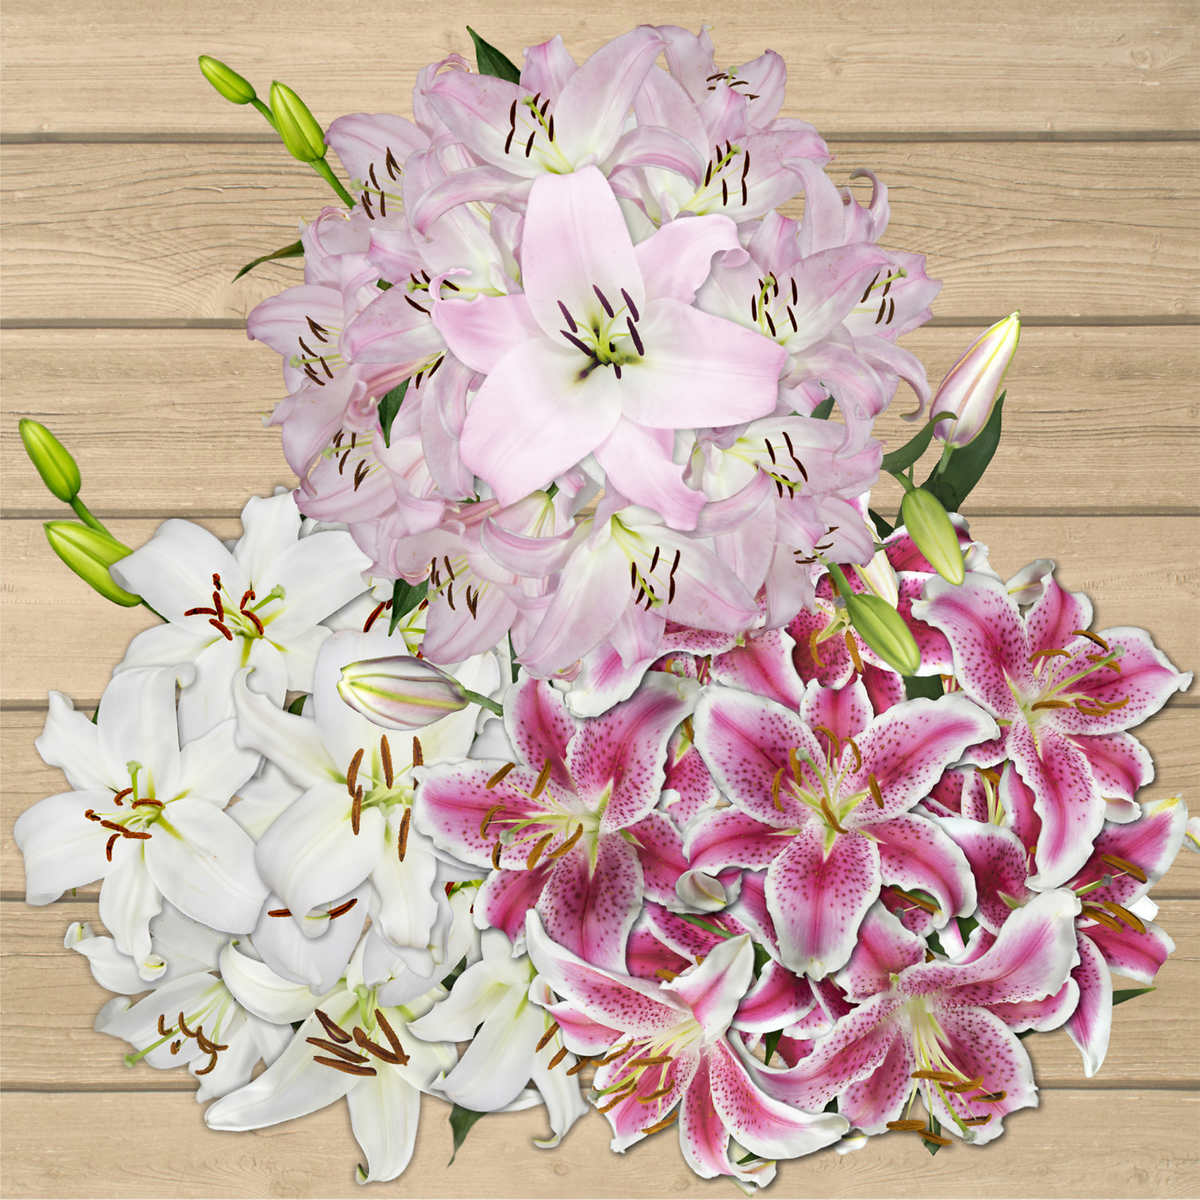 Bulk flowers costco 50 stem assorted oriental lilies dhlflorist Choice Image